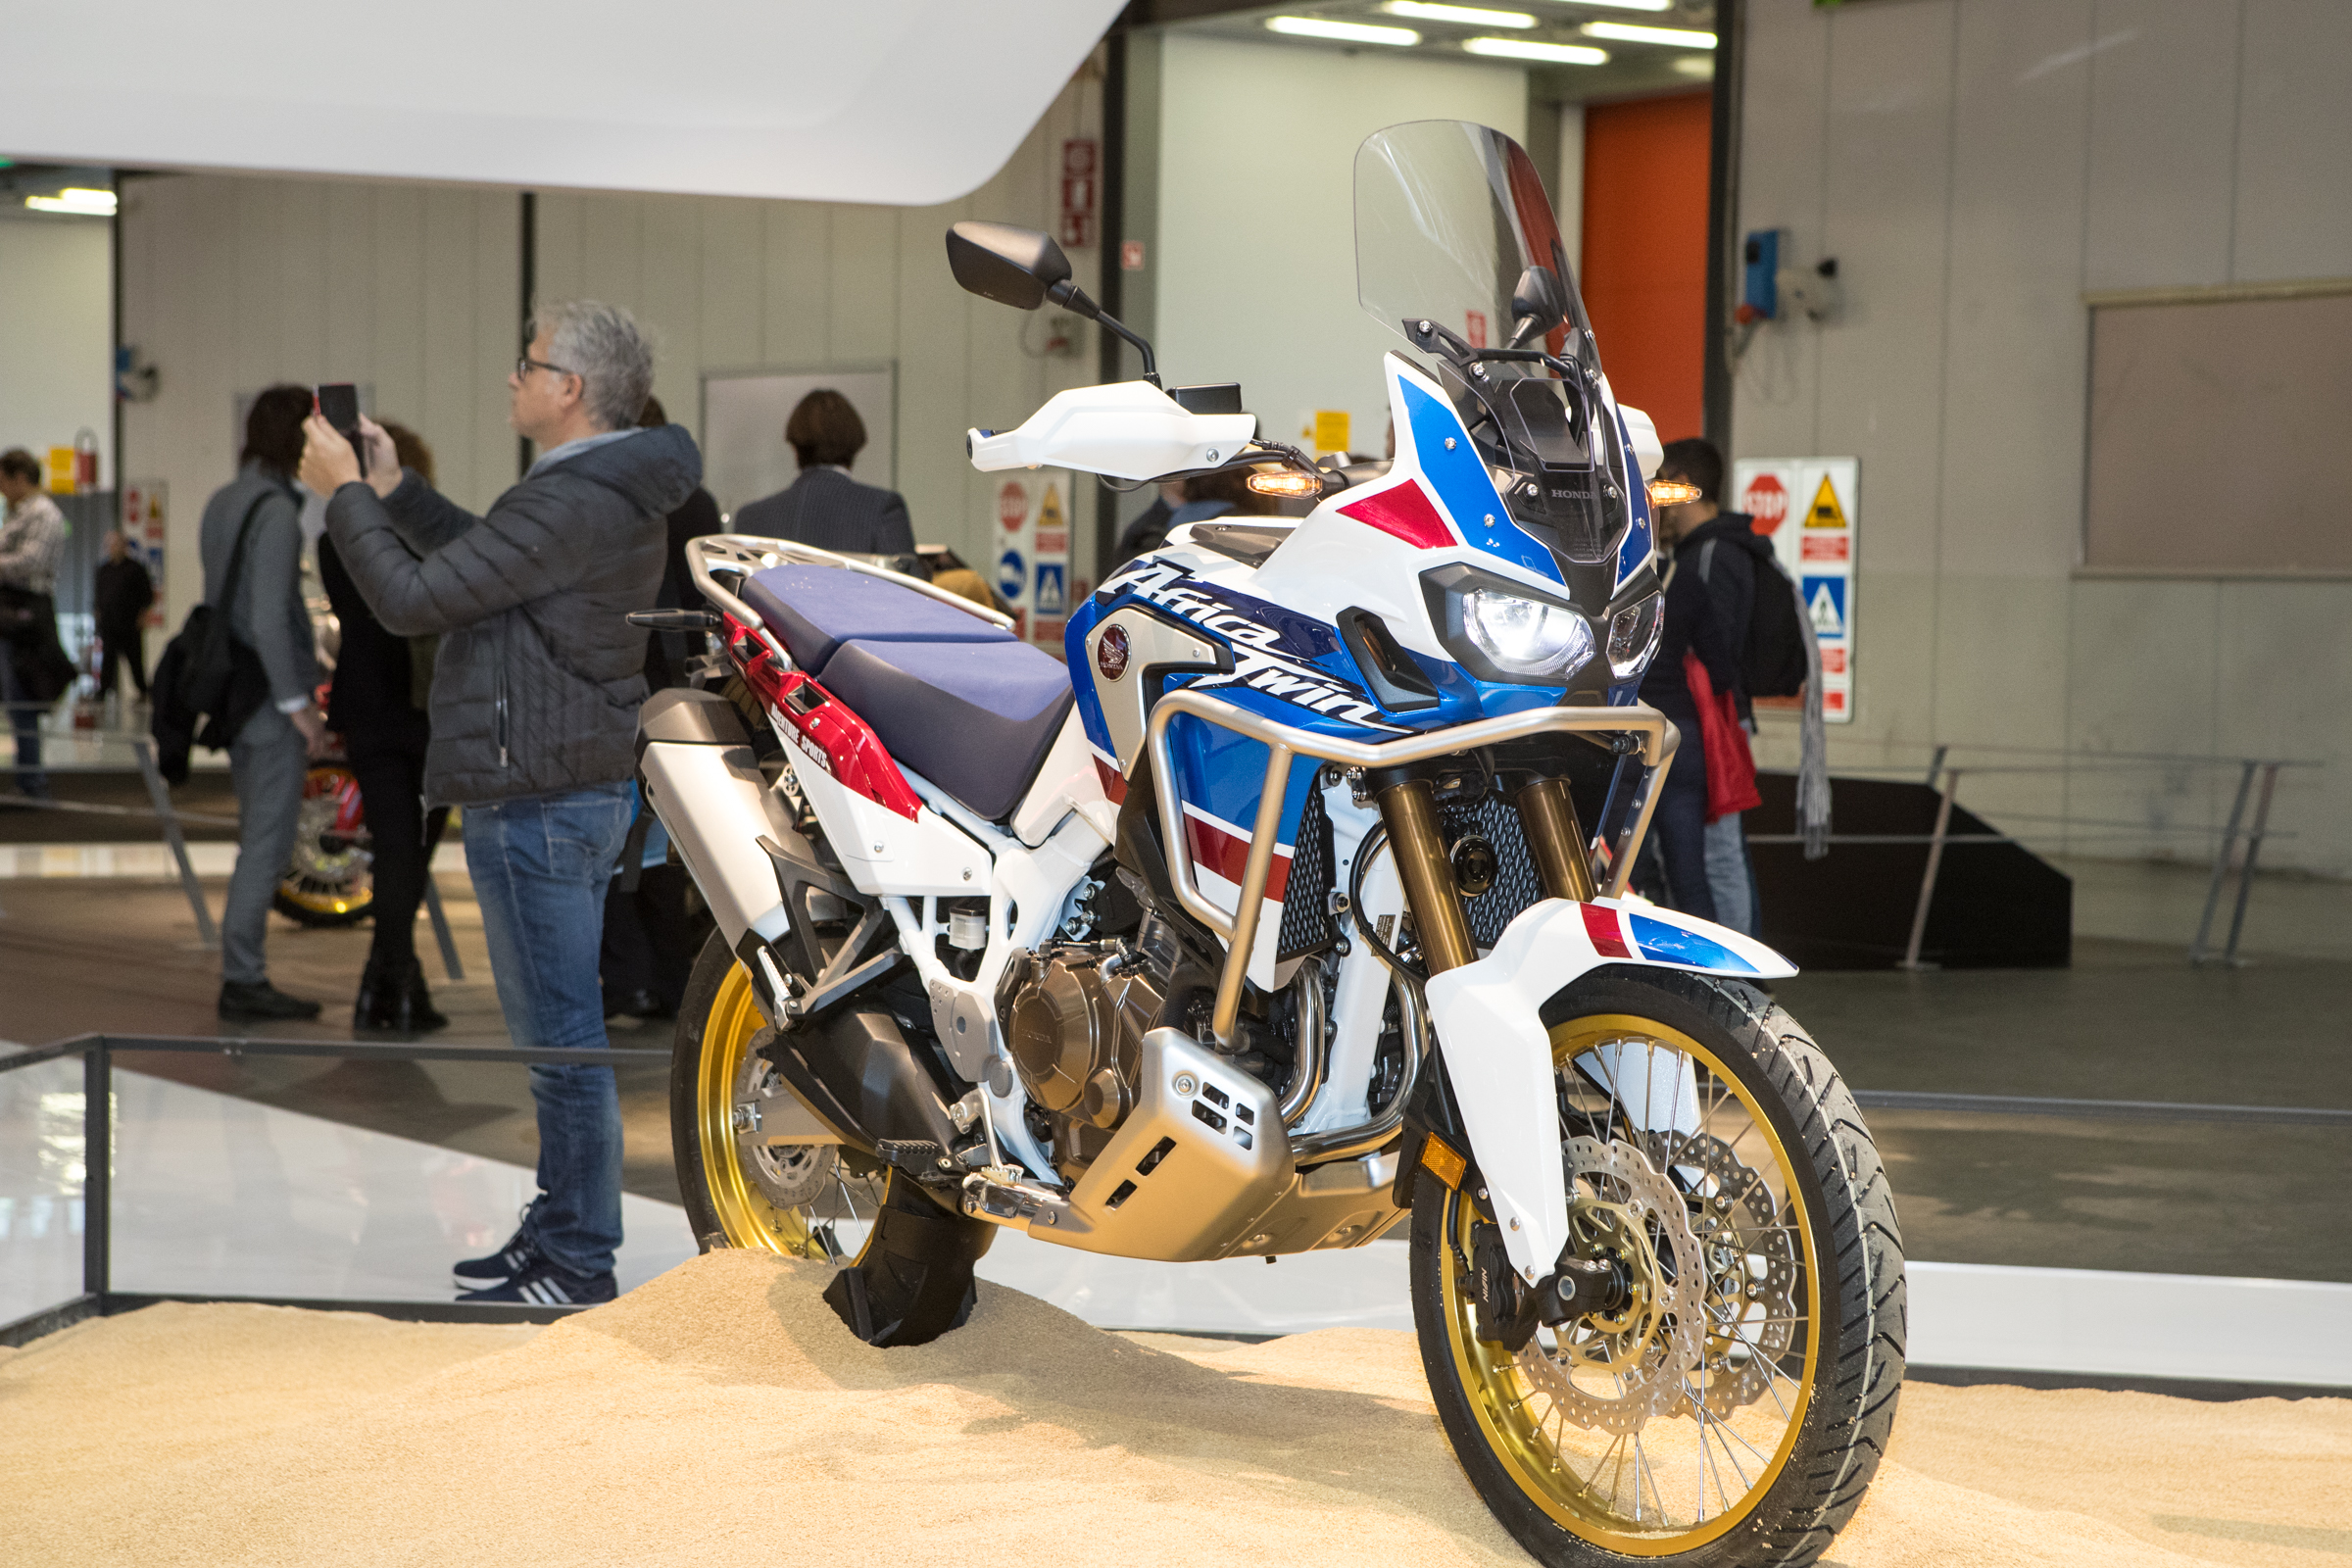 Honda released their newest Adventure model, the CRF1000L2 and the Sports model updates. The sports model features more guards, heated grips, a 1.6 gallon larger fuel tank, a longer travel rear shock, and more. While the standard L2 gets a slew of small updates throughout the bike.